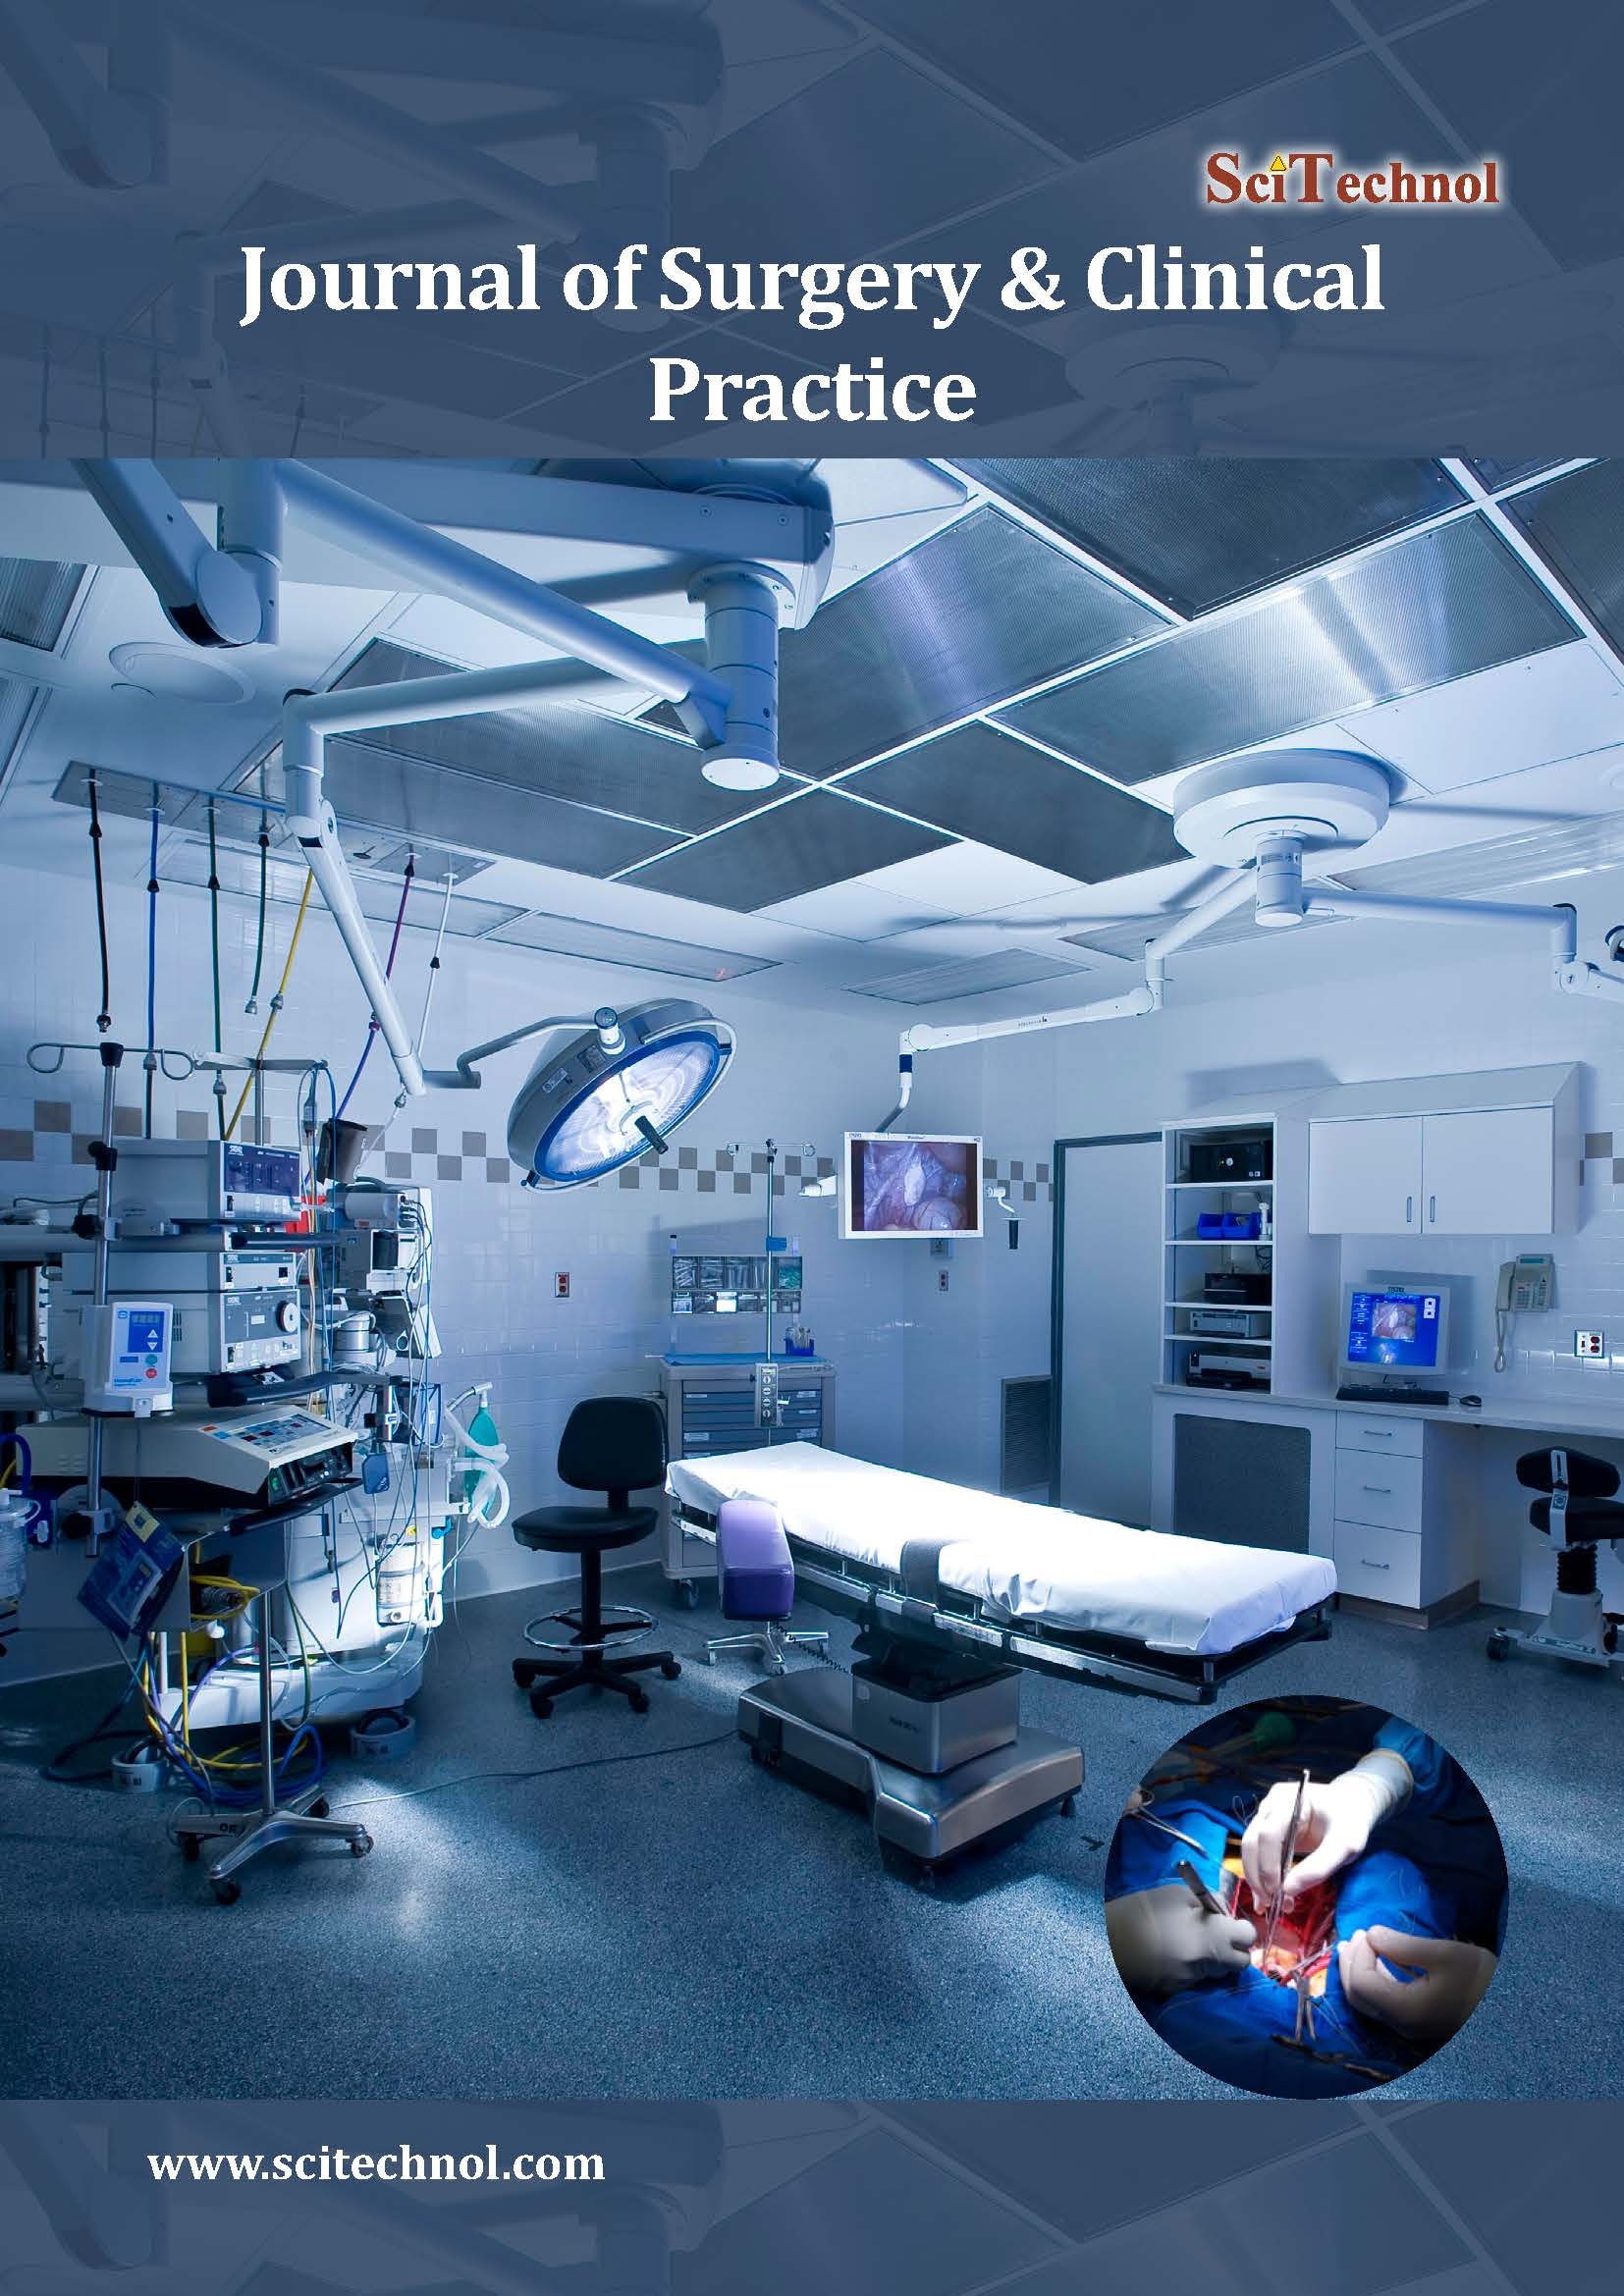 Journal-of-Surgery--Clinical-Practice-flyer.jpg